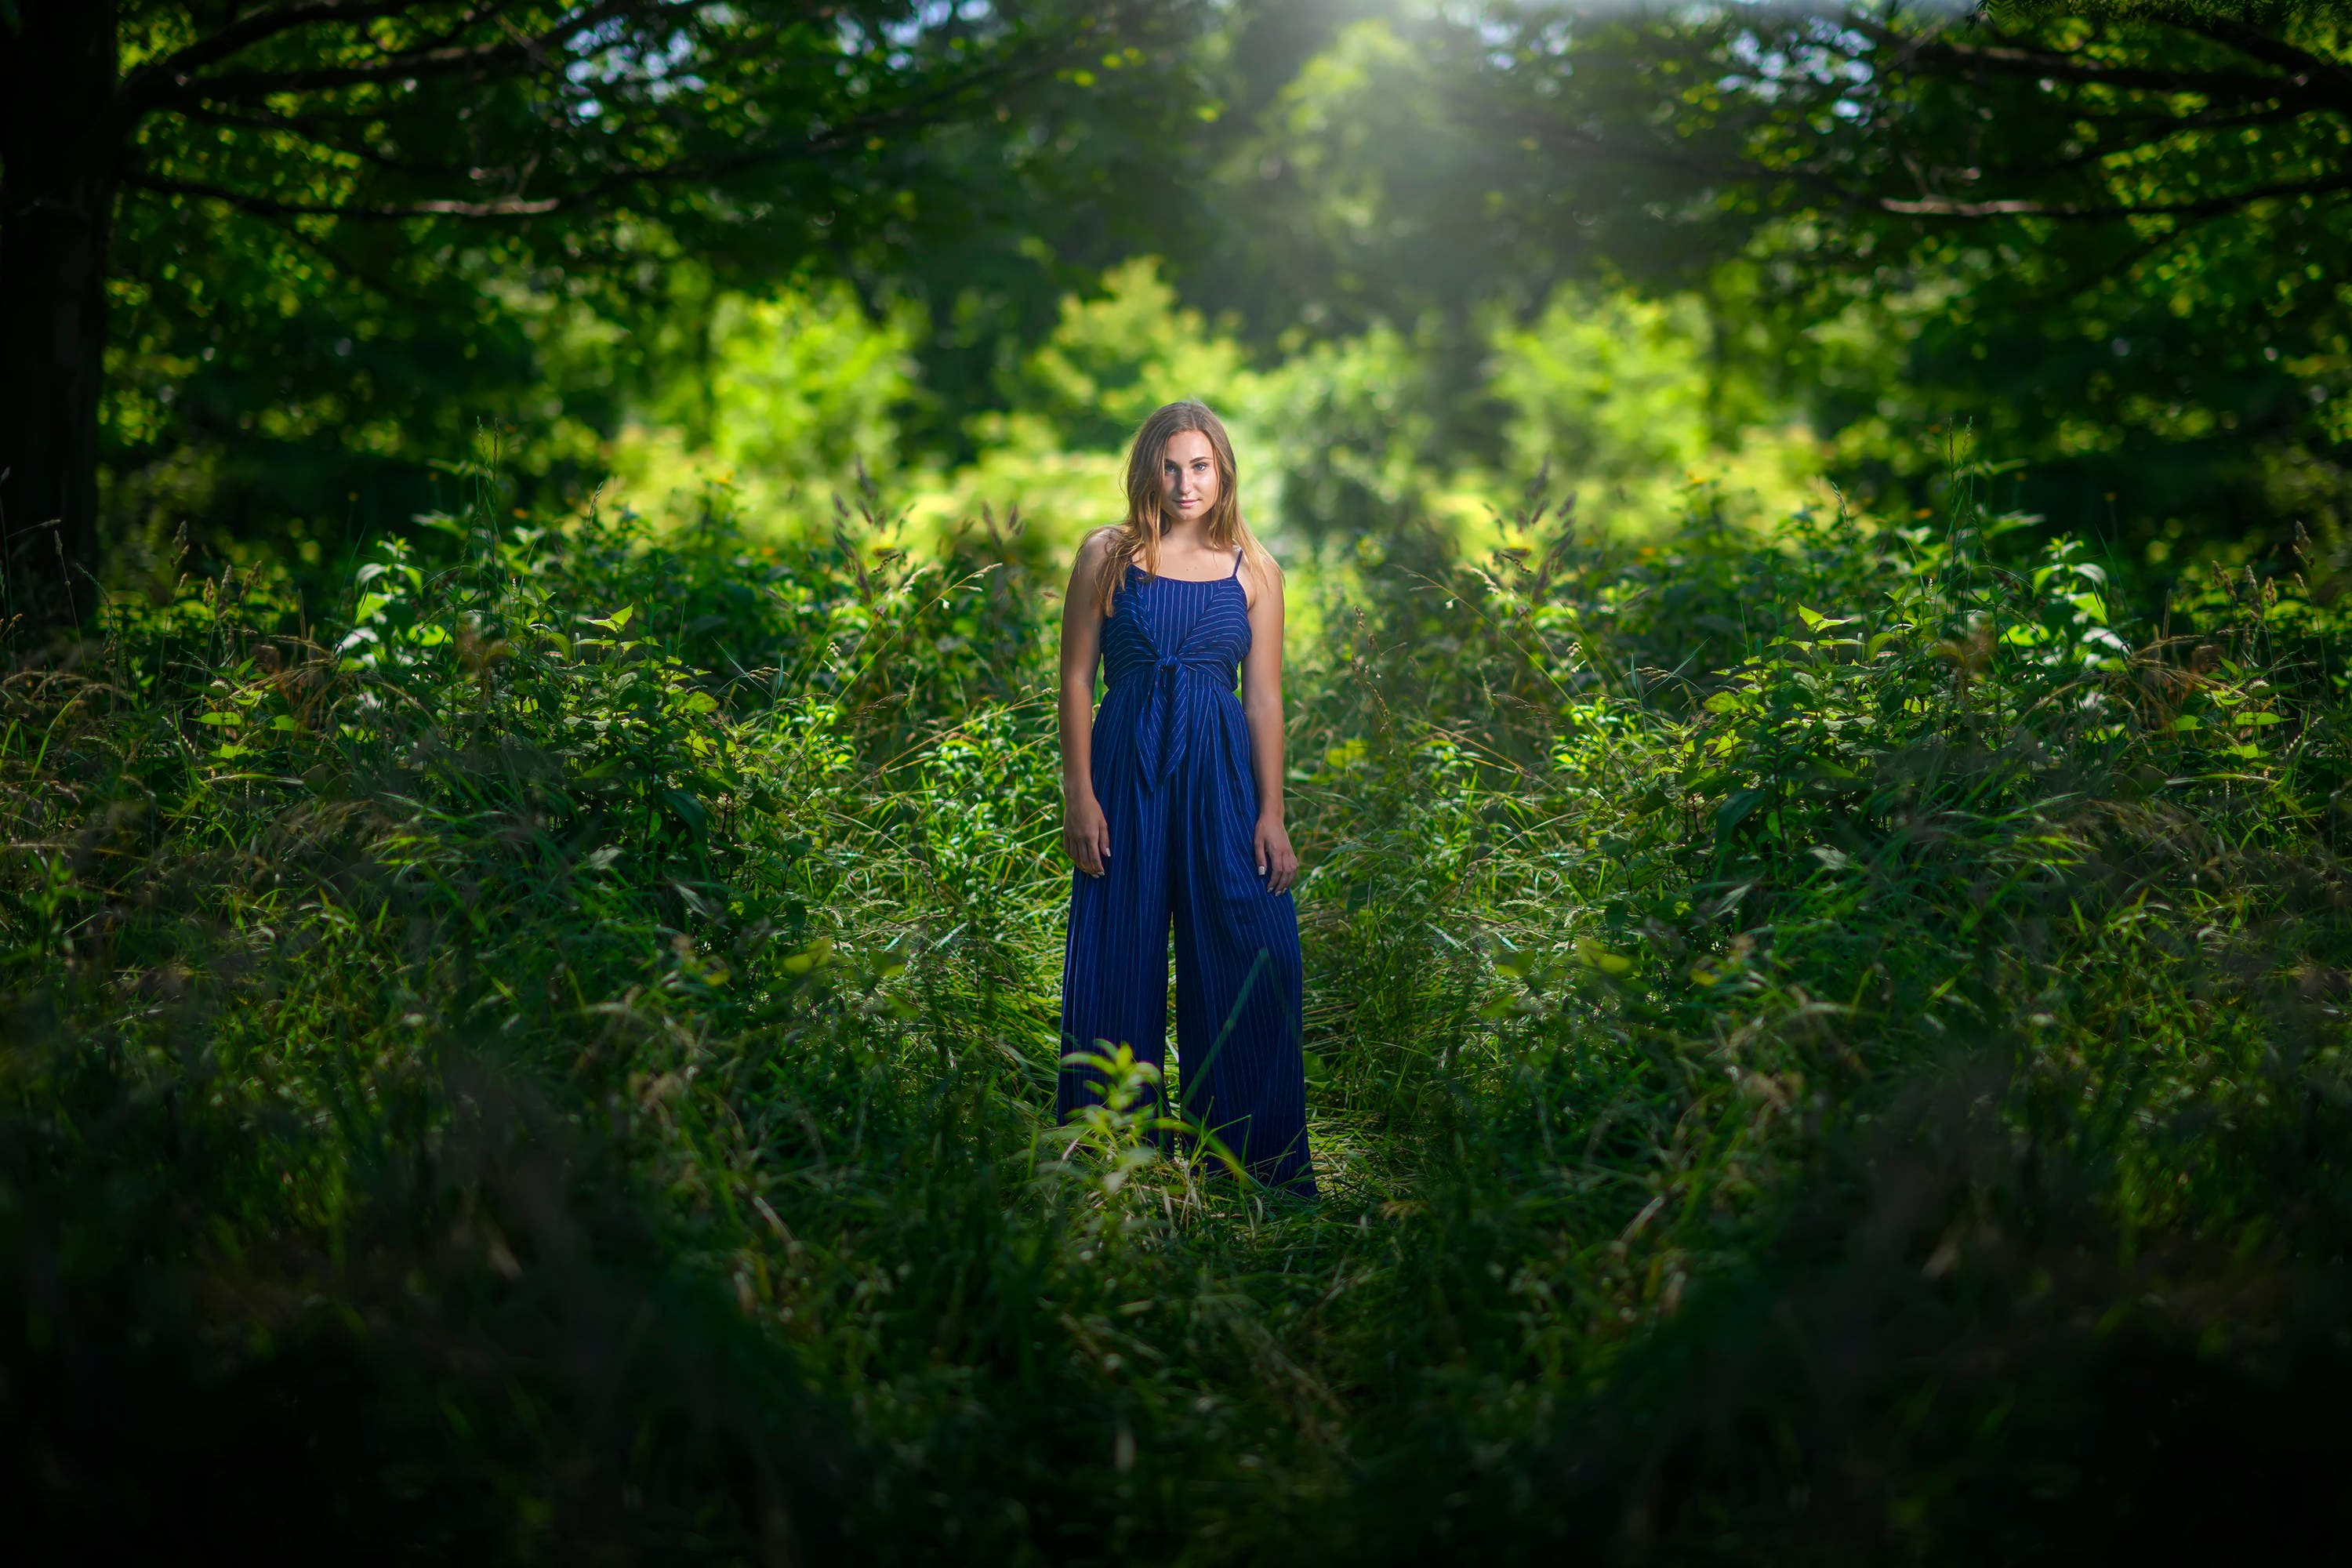 How Audrey Woulard Captured the Girl in the Woods in Urban Chicago